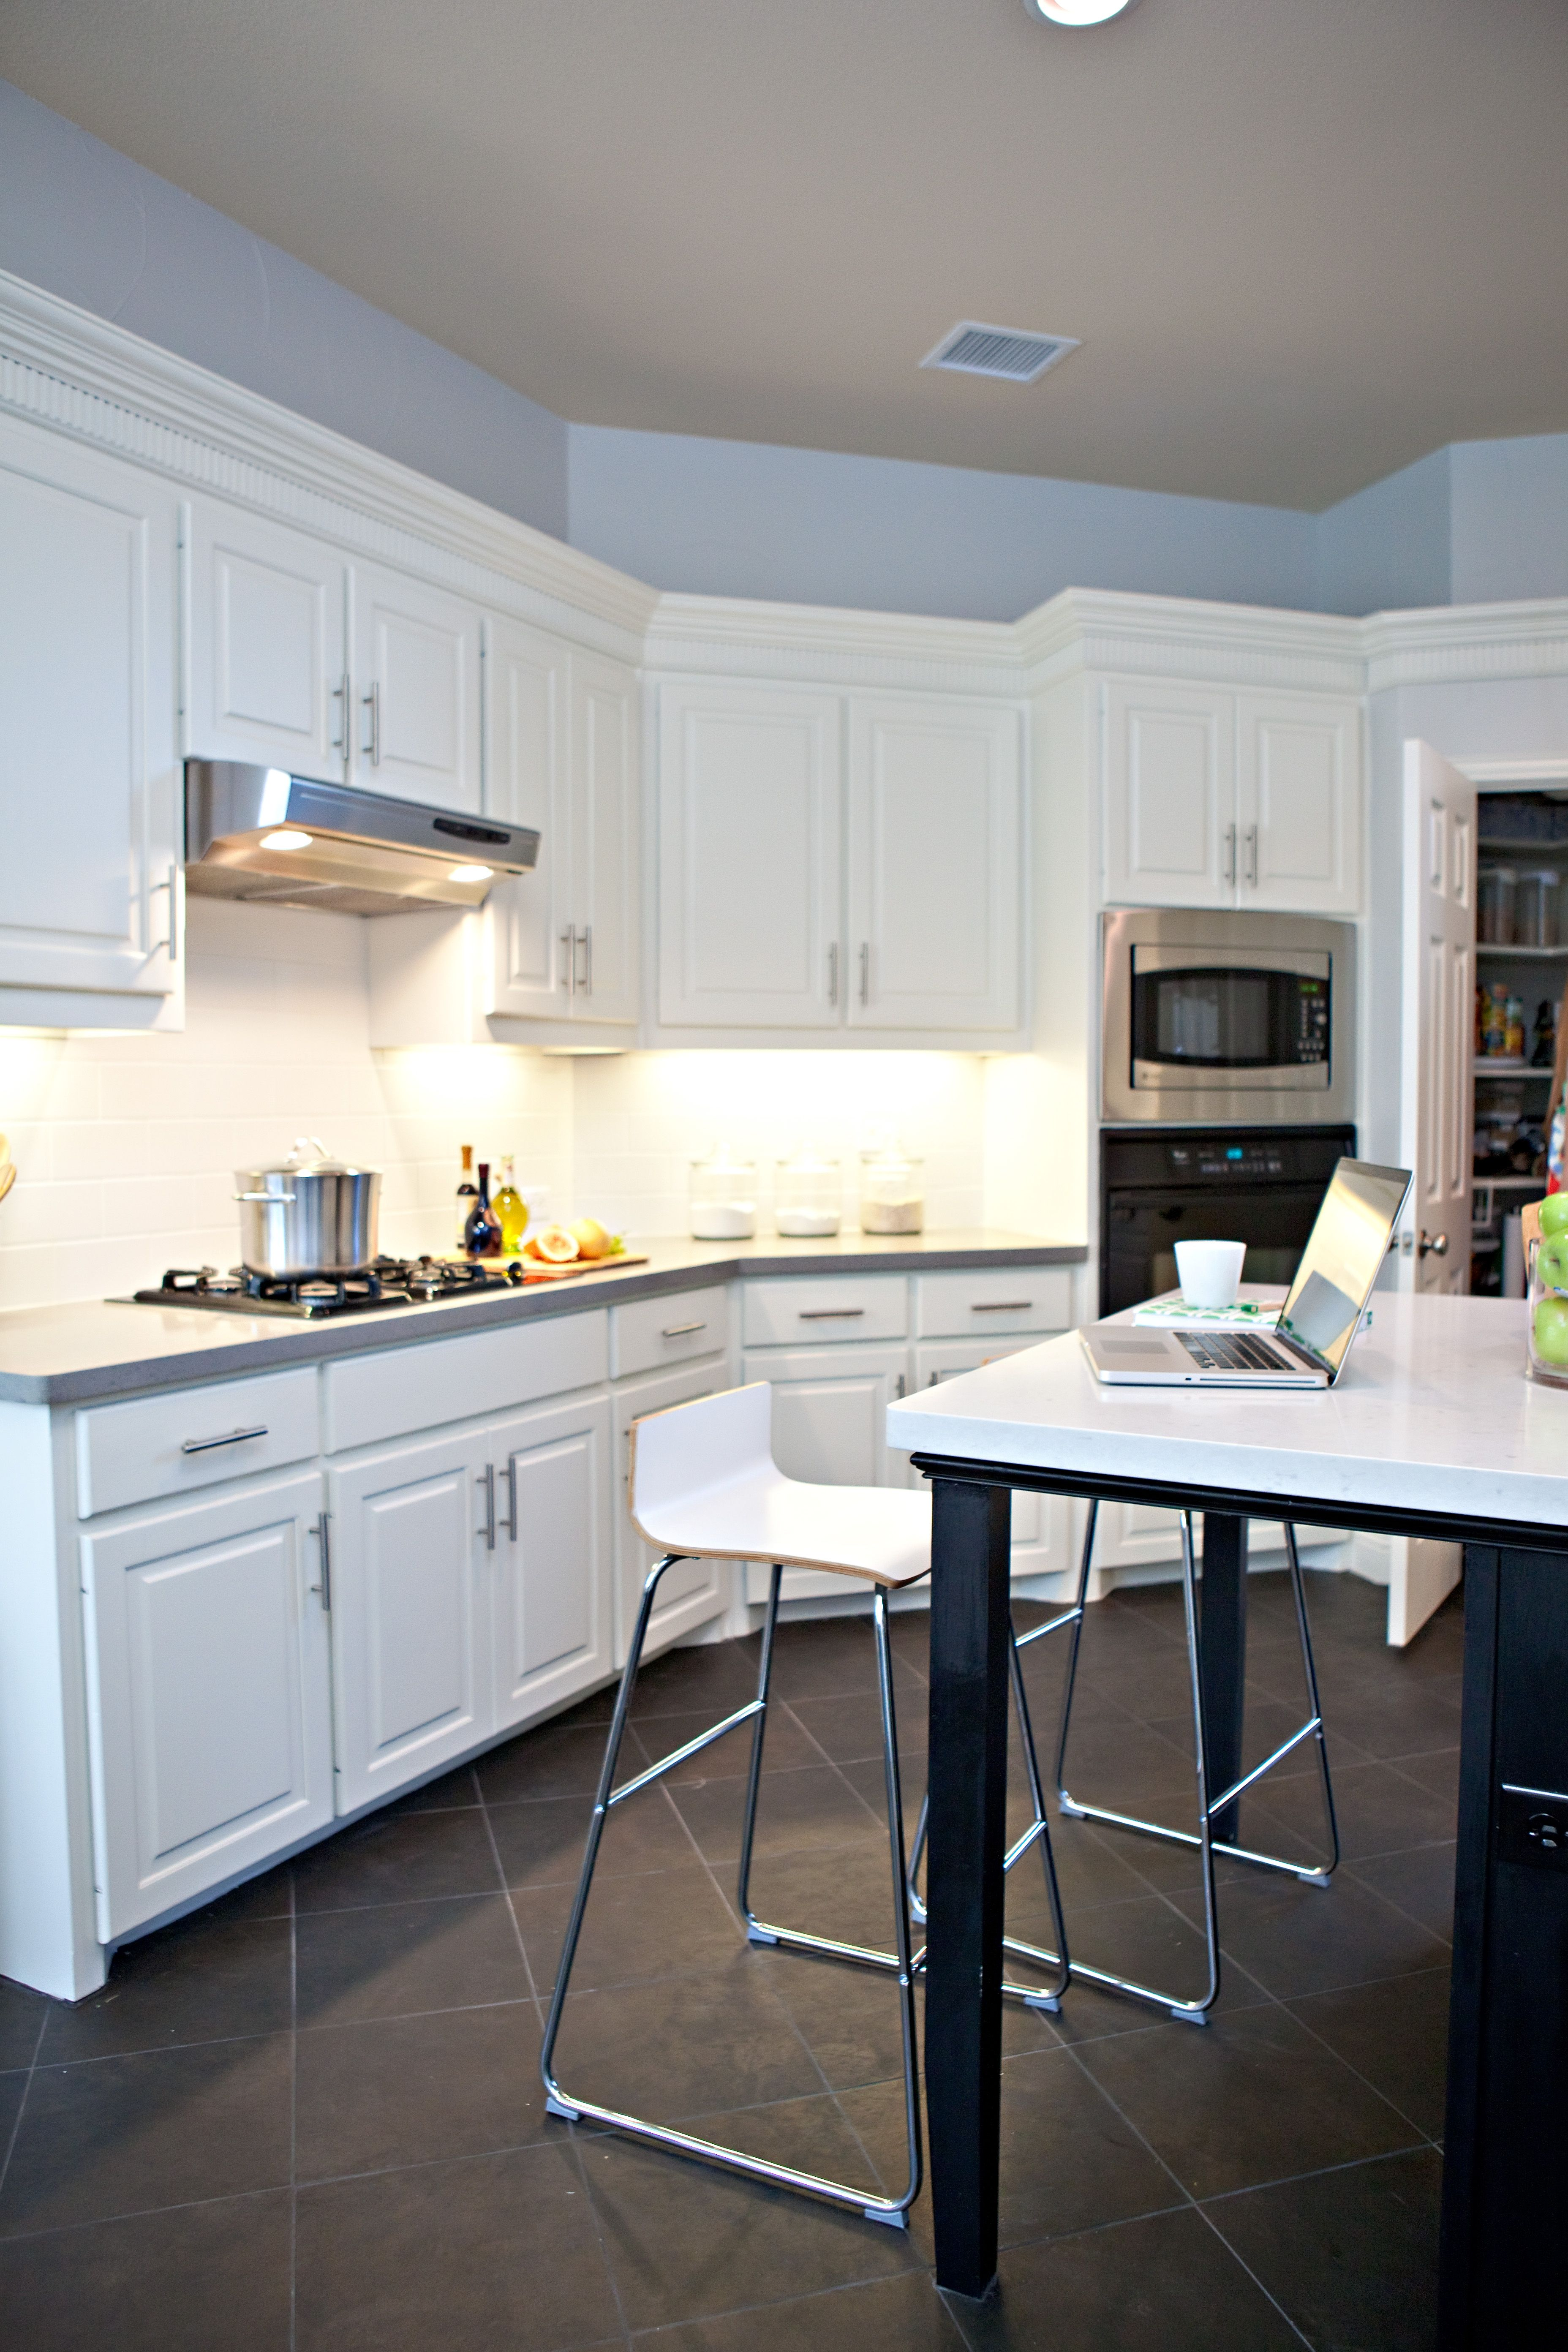 file gallery mitered new about profile edge thick free countertops unnamed countertop kitchen